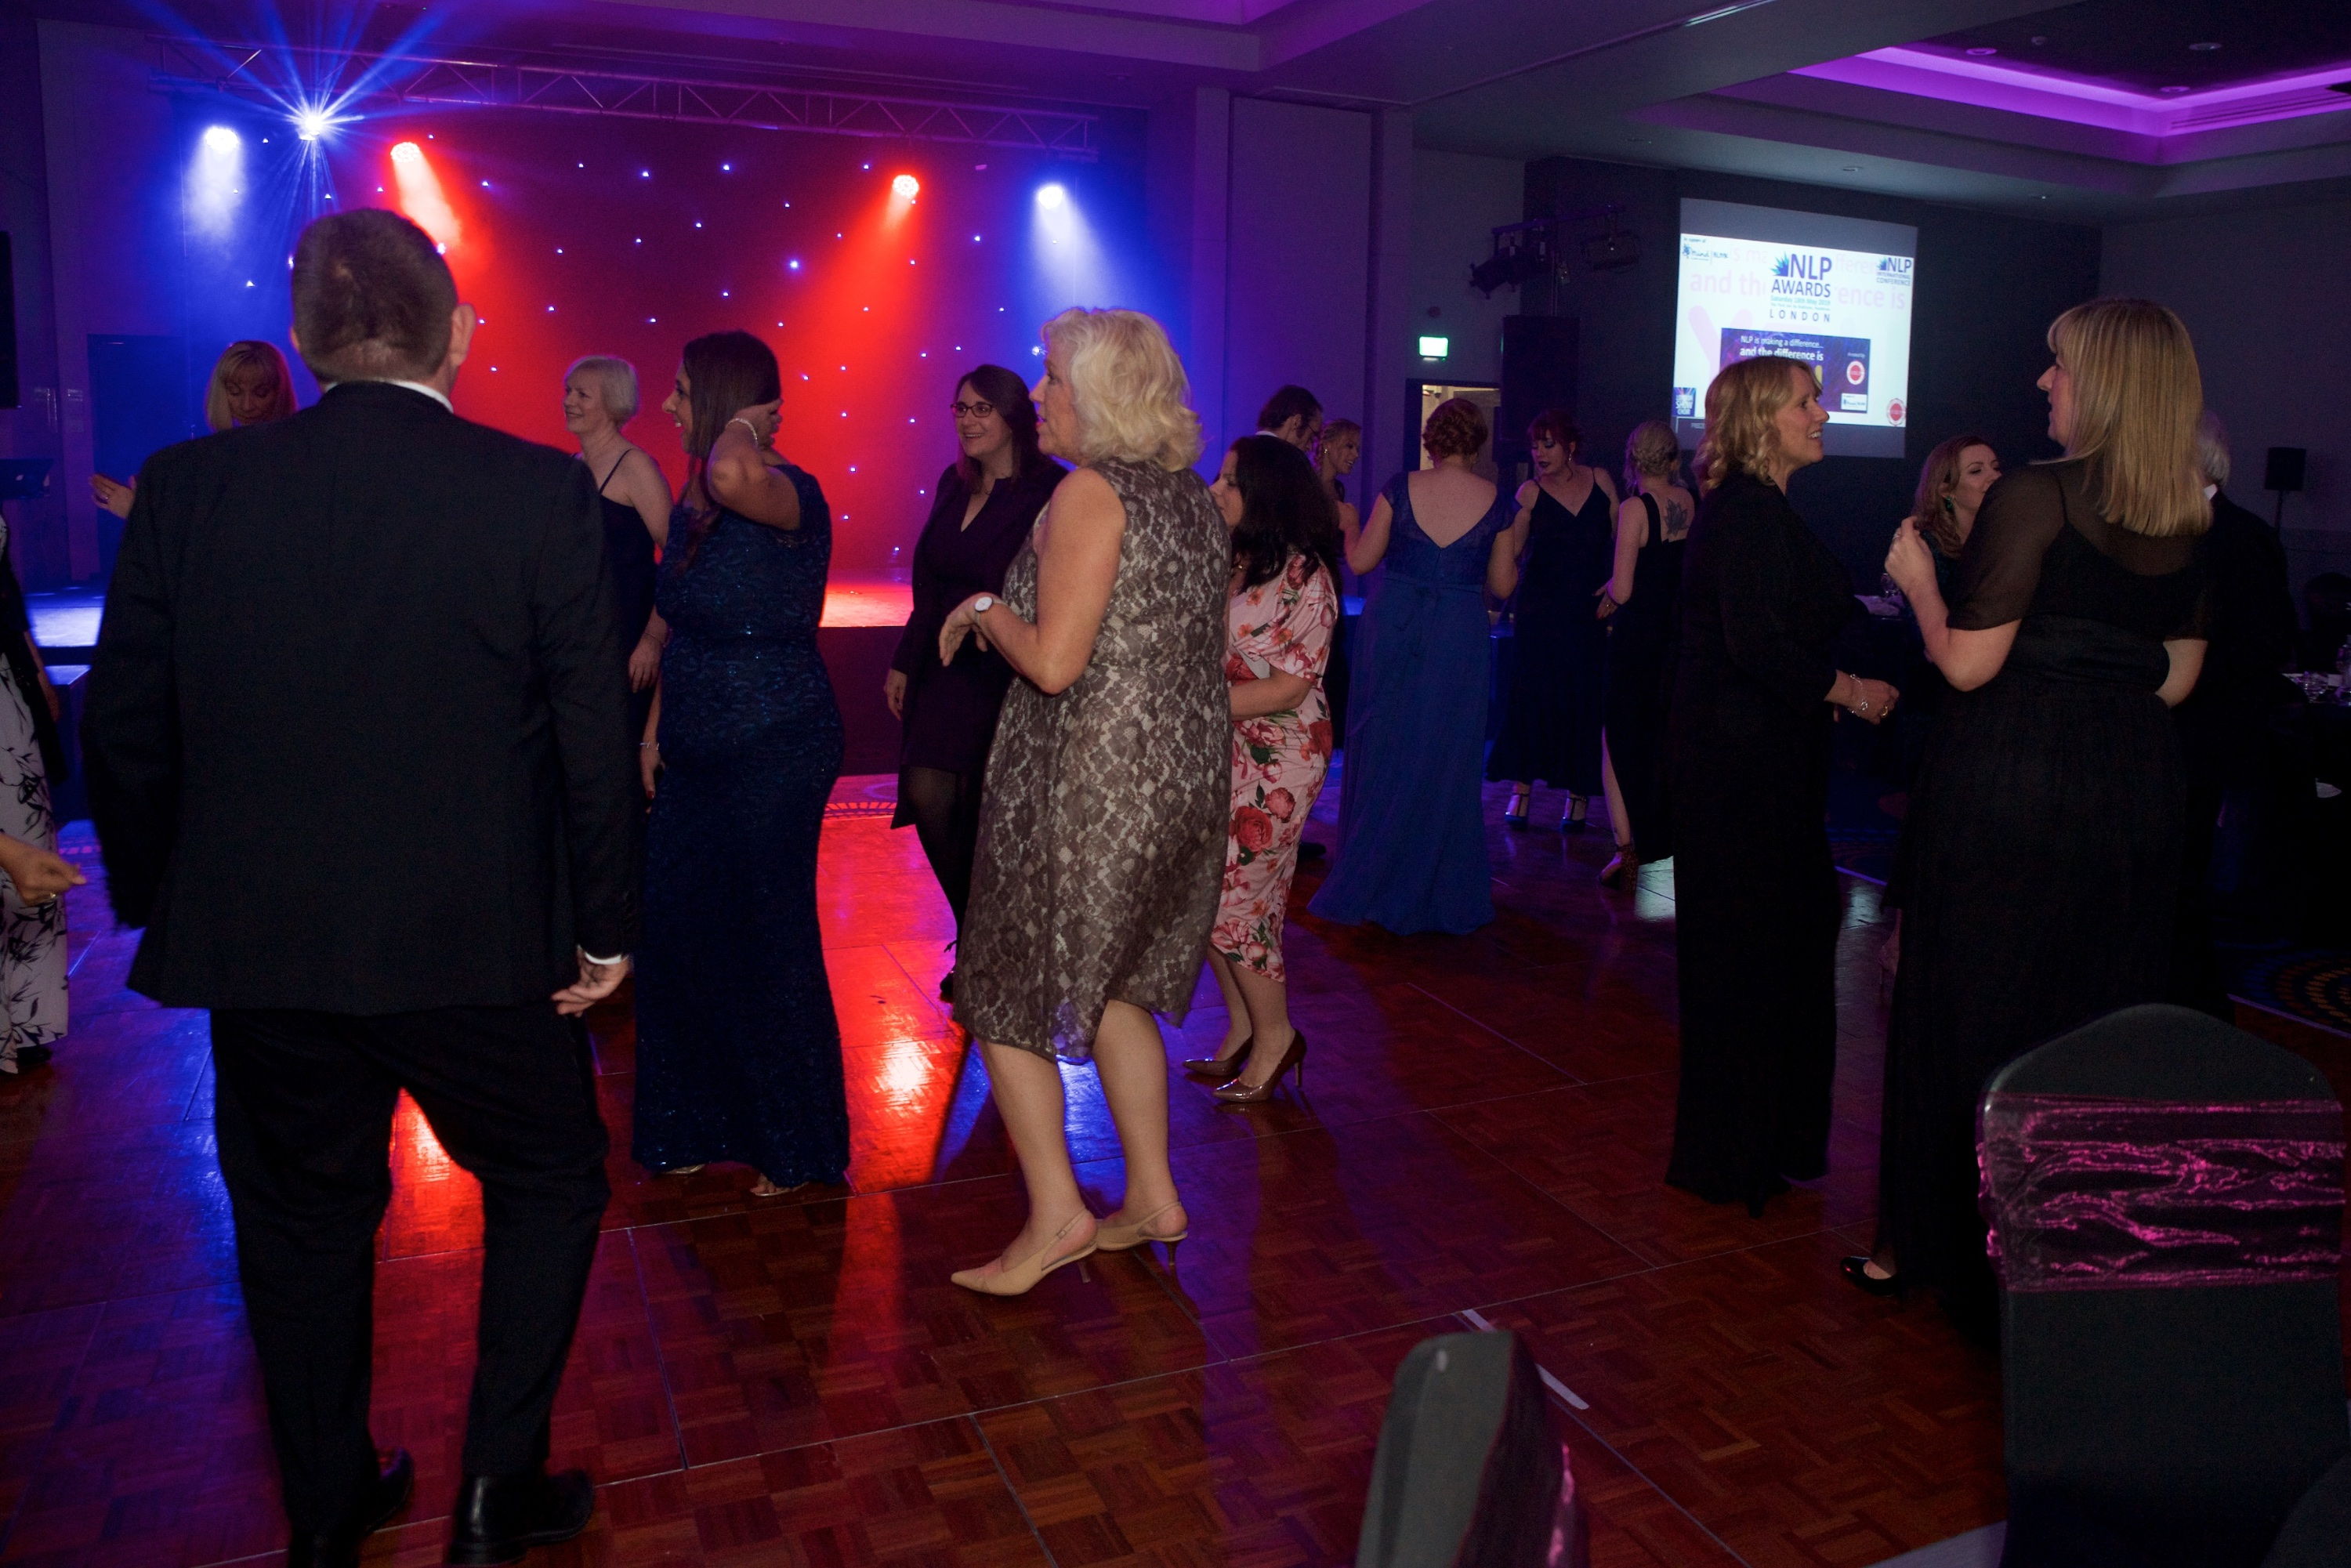 Time to boogie at NLP Awards